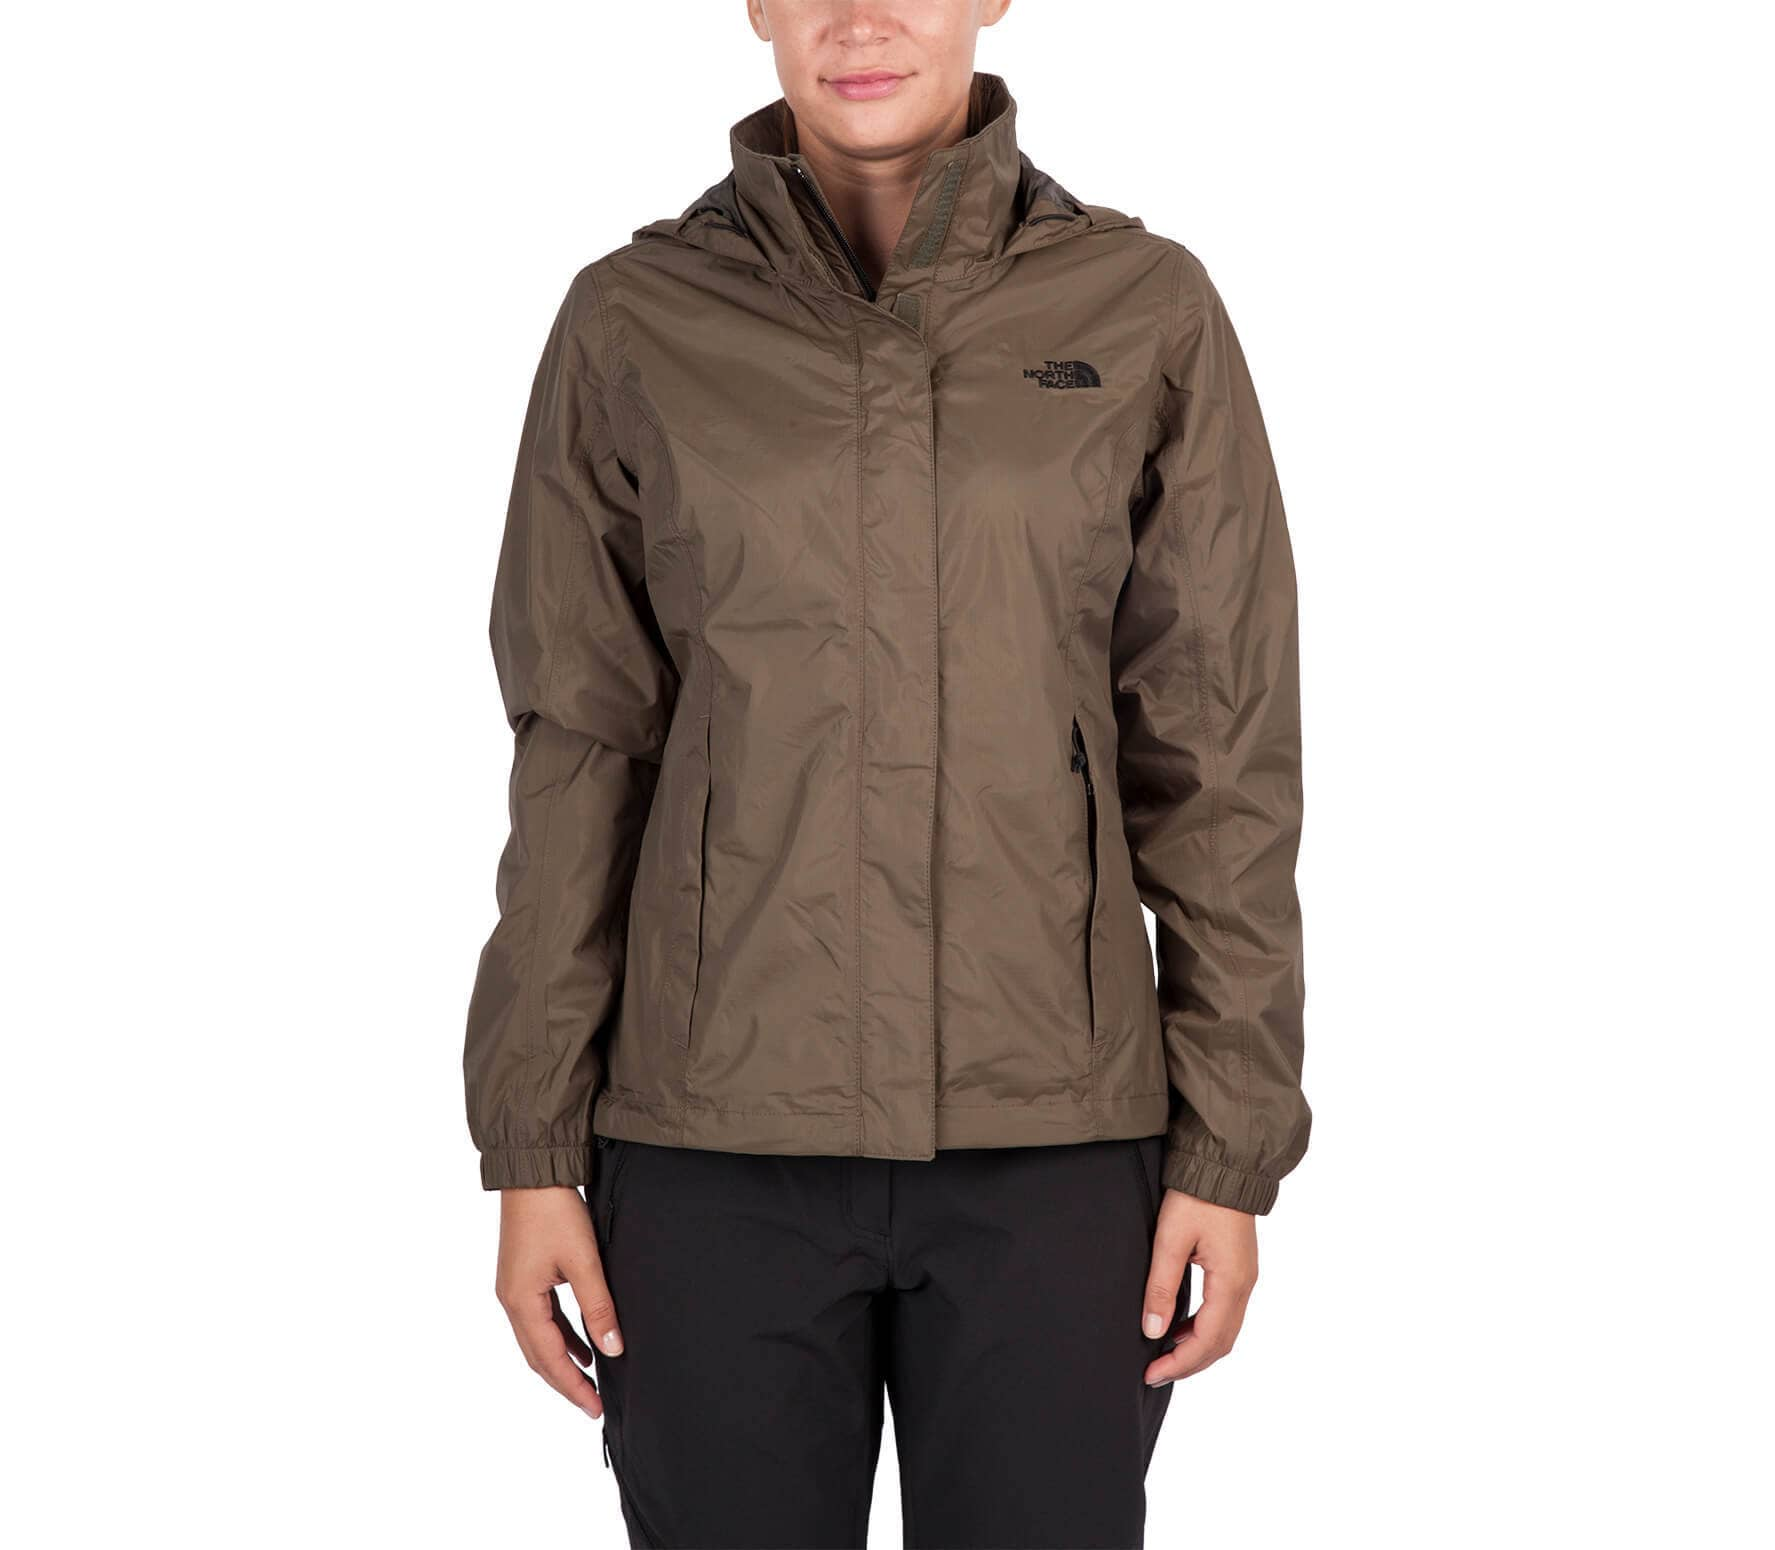 the north face resolve damen regenjacke dunkelgr n im online shop von keller sports kaufen. Black Bedroom Furniture Sets. Home Design Ideas